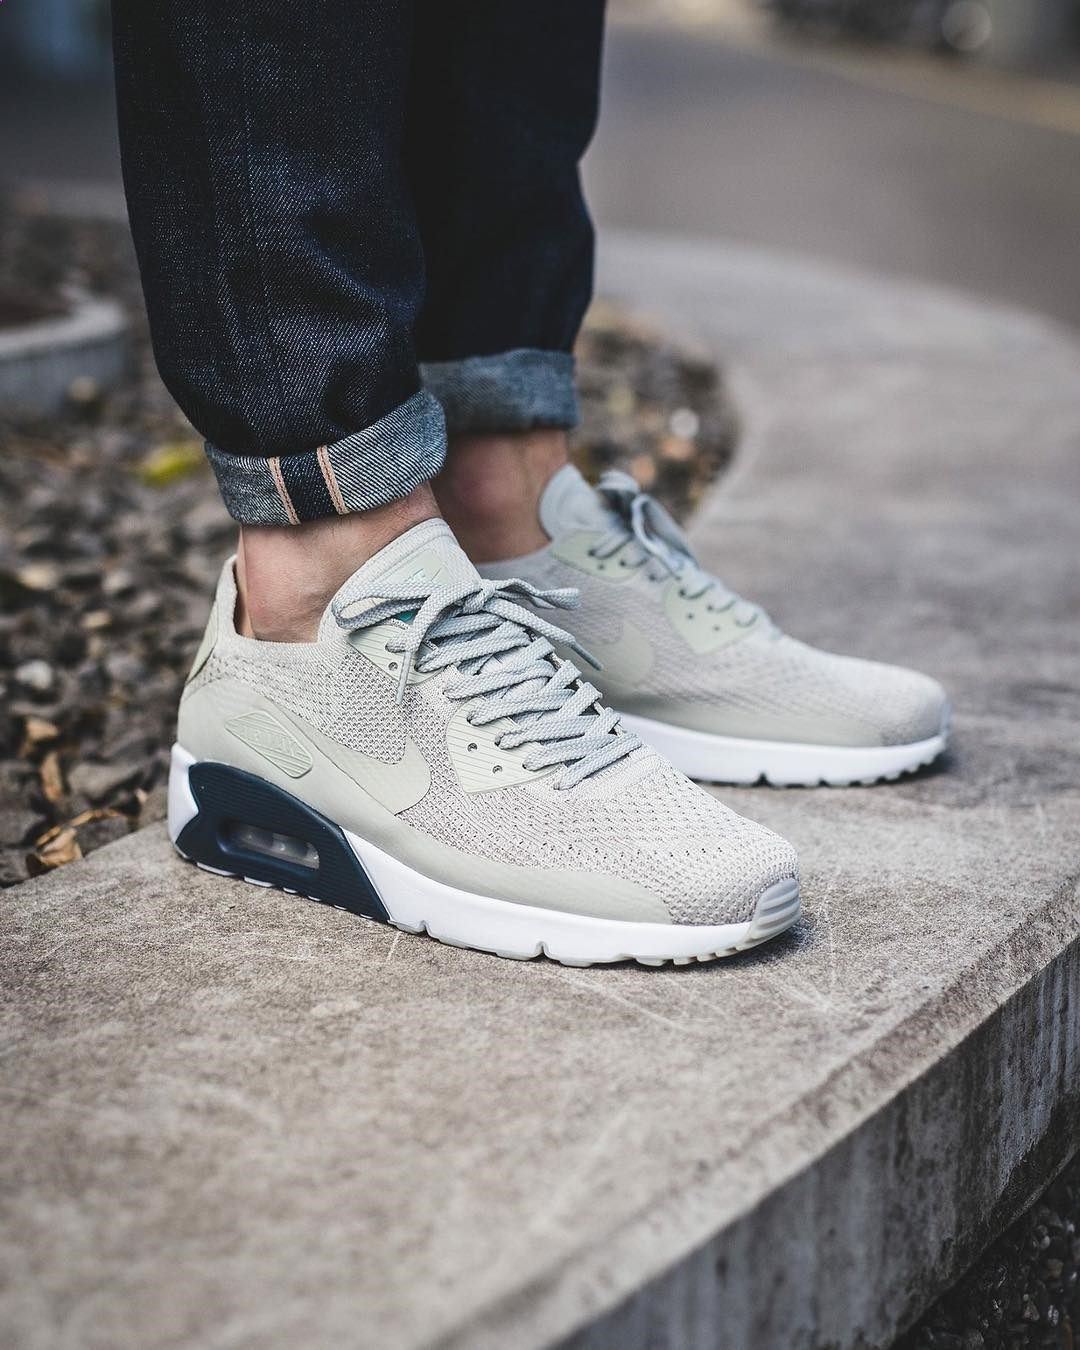 cheap for discount 48a4d c24b5 Nike Air Max 90 x Ultra Flyknit www.99wtf.net .